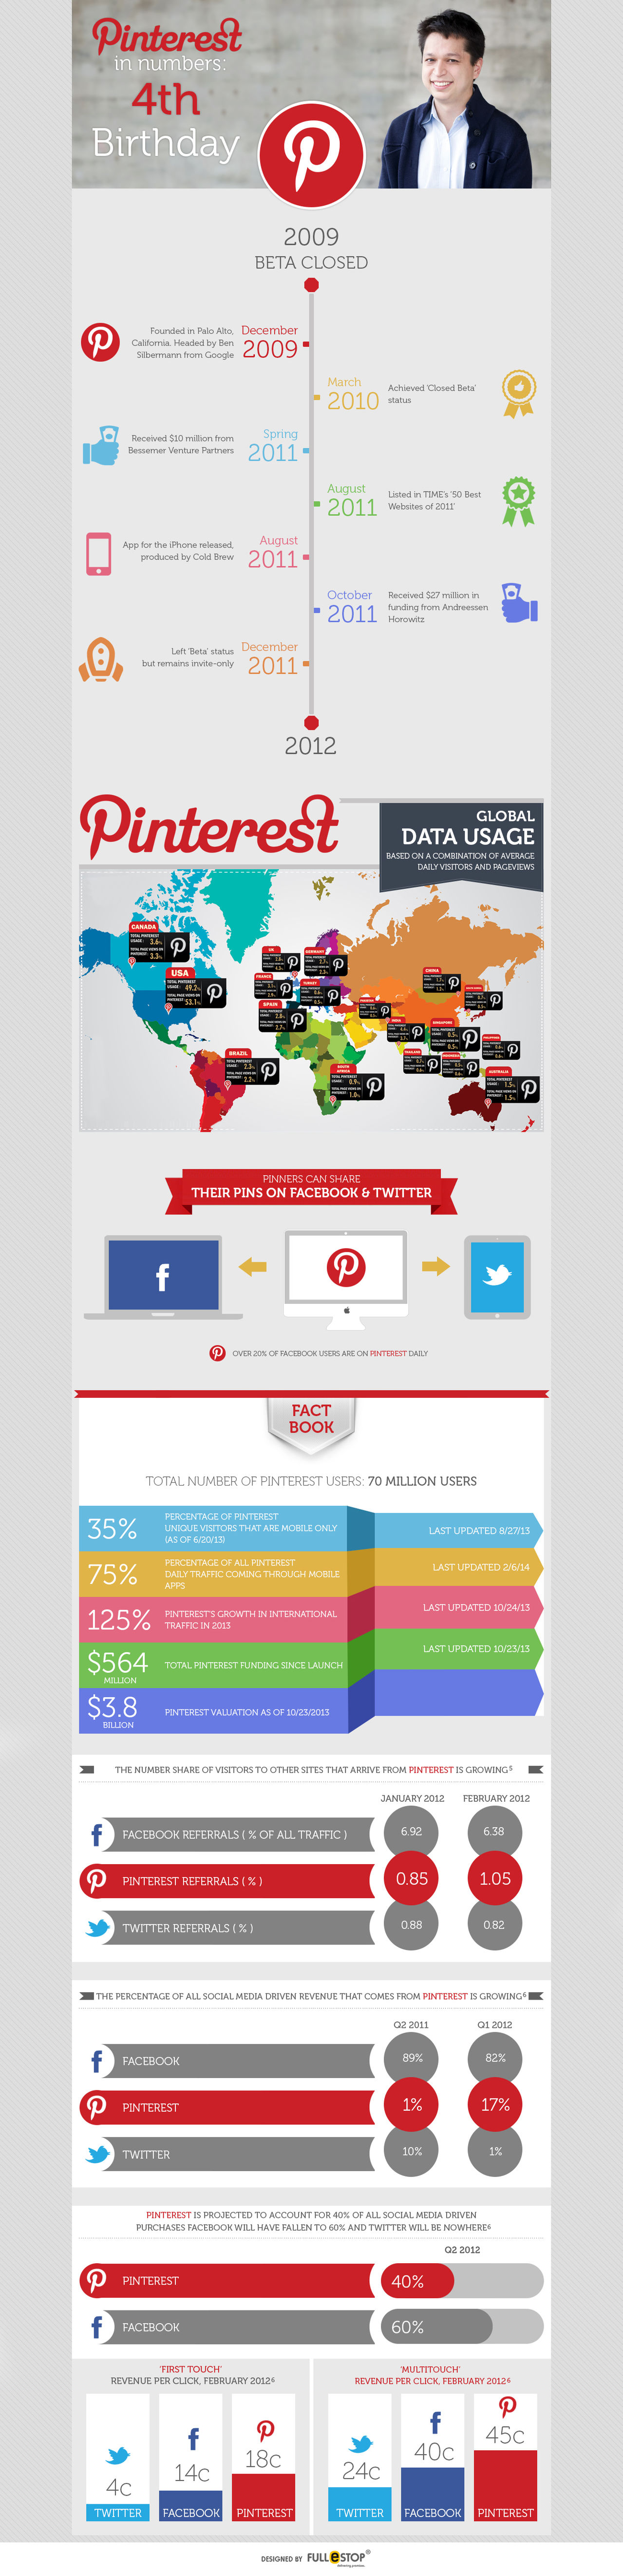 Pinterest Numbers As They Celebrate 4th Birthday